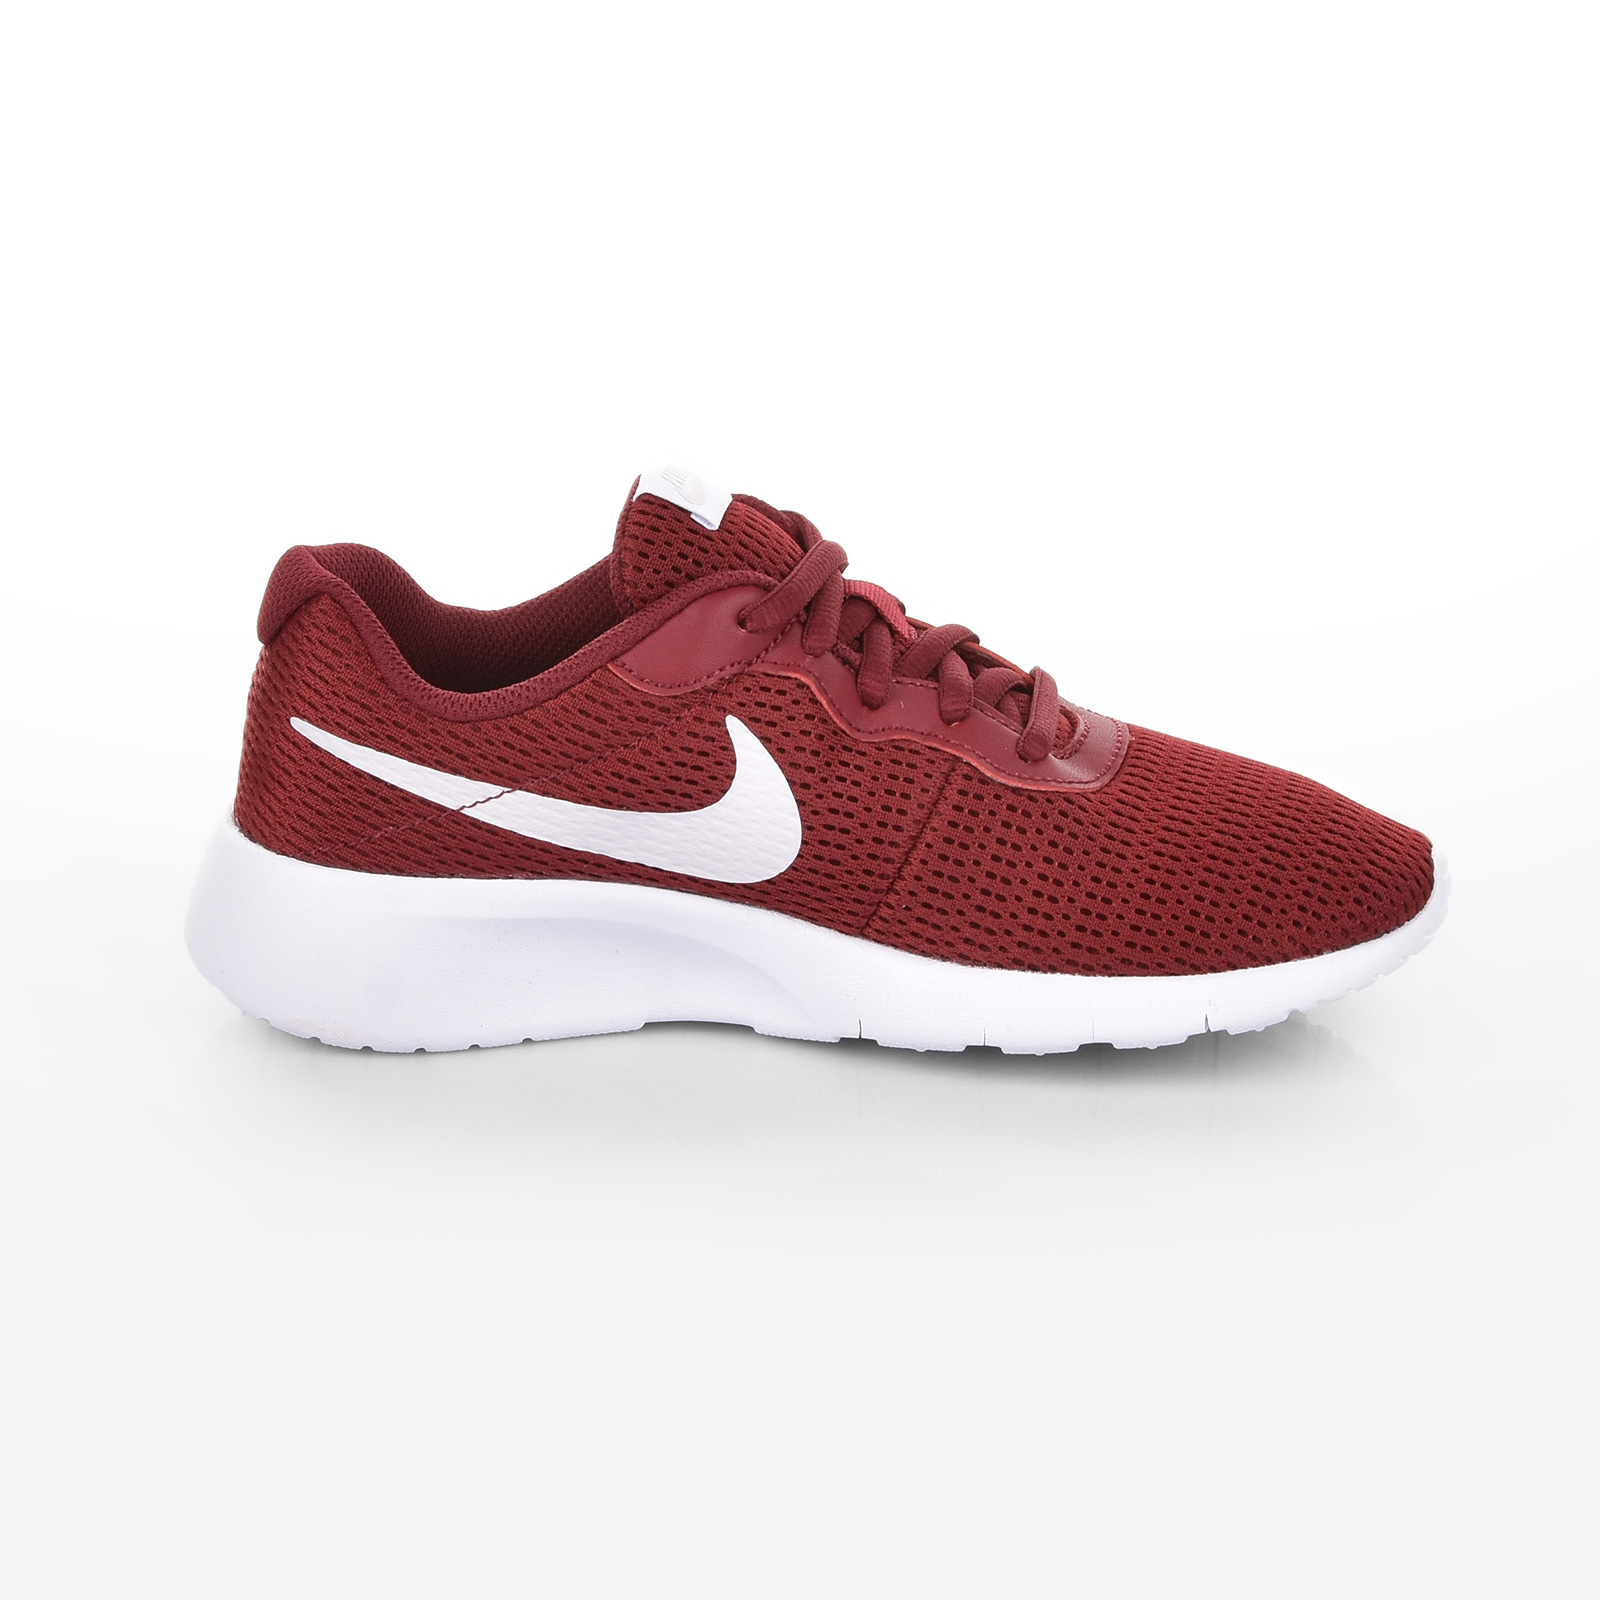 4e627ccb236 Nike - NIKE TANJUN (GS) - TEAM RED/VAST GREY-WHITE, ΠΑΙΔΙ | ΠΑΠΟΥΤΣΙΑ |  SNEAKERS